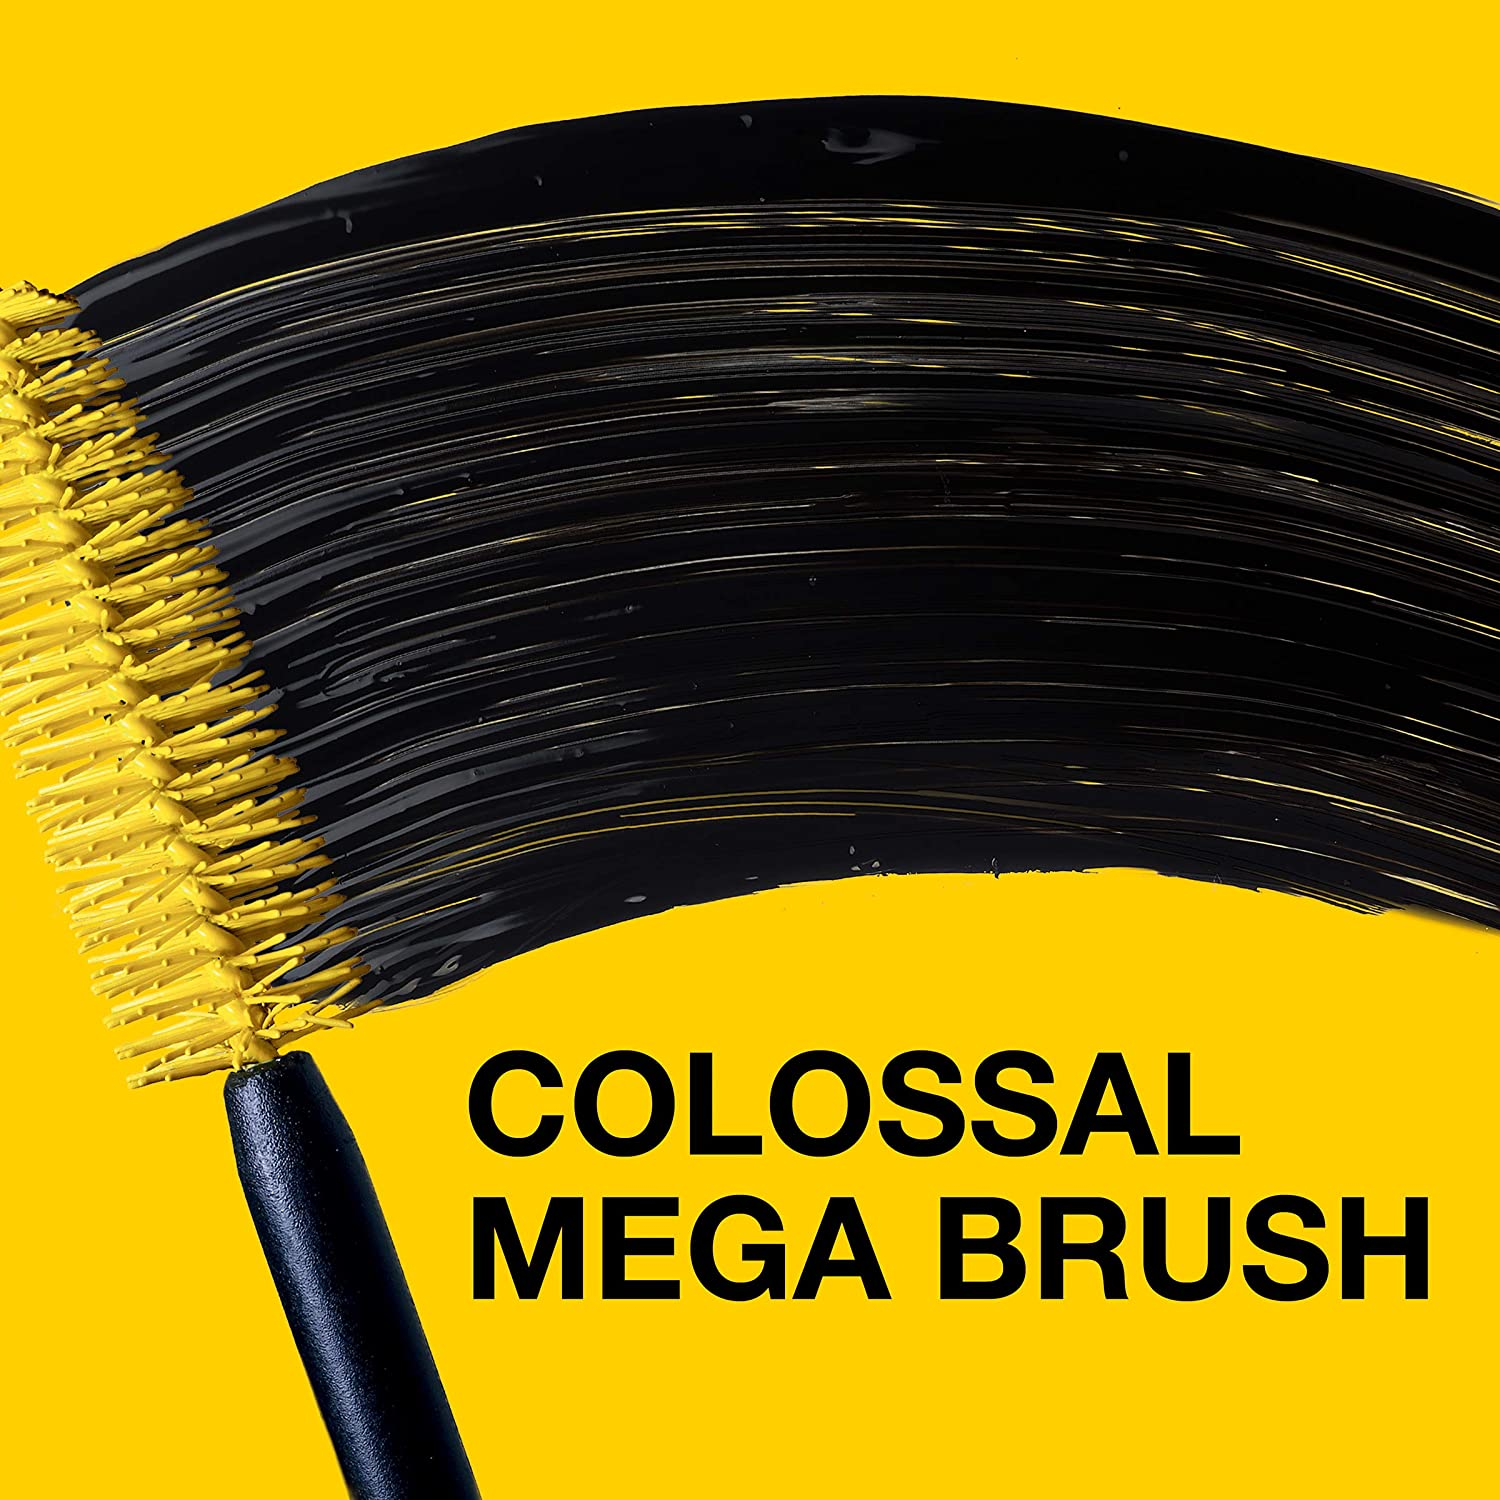 Maybelline Volum' Express The Colossal Washable Mascara, Volumizing, Glam Black : Beauty